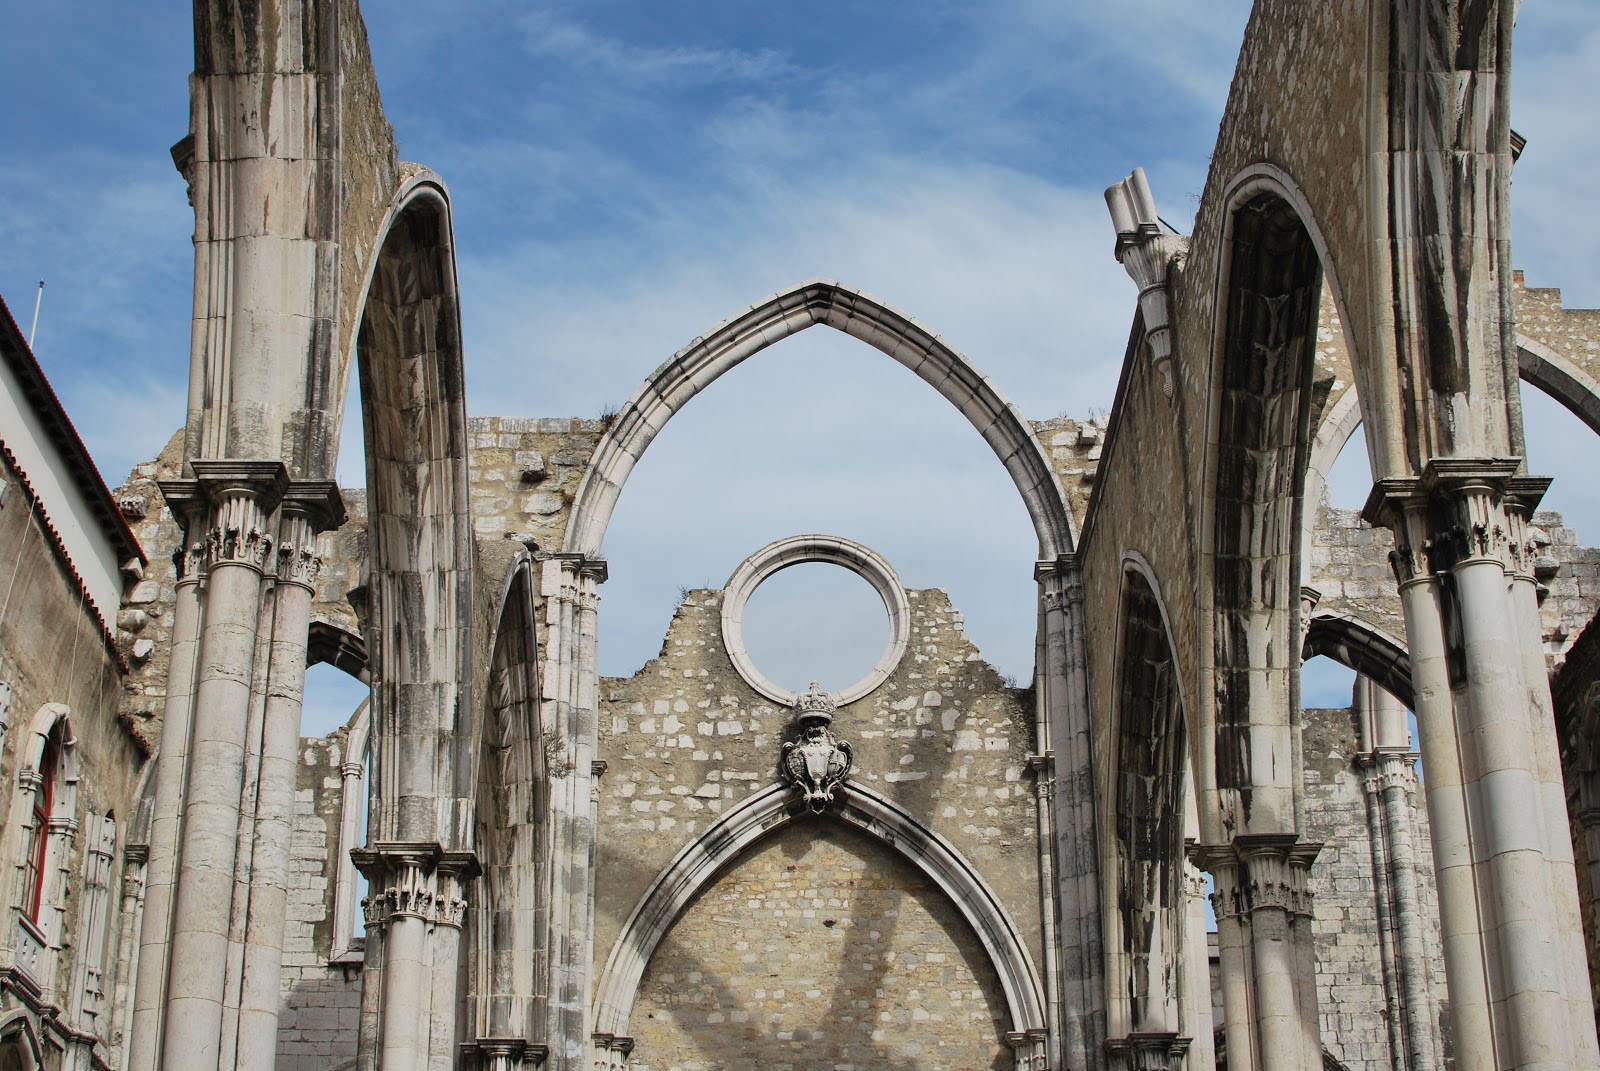 Rows of large arches